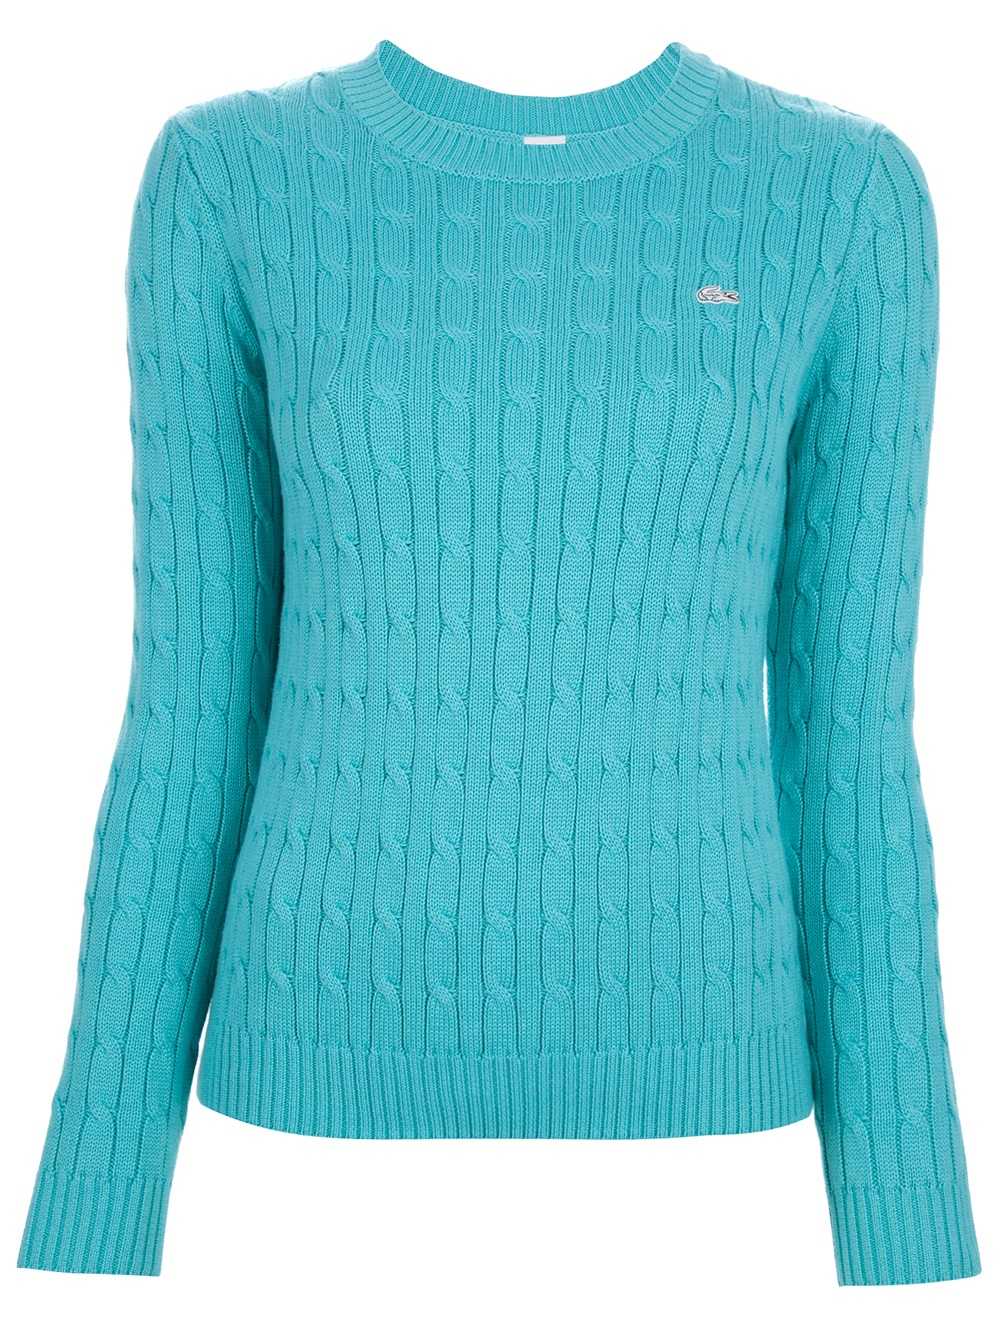 Lyst Lacoste L Ive Cable Knit Jumper In Blue